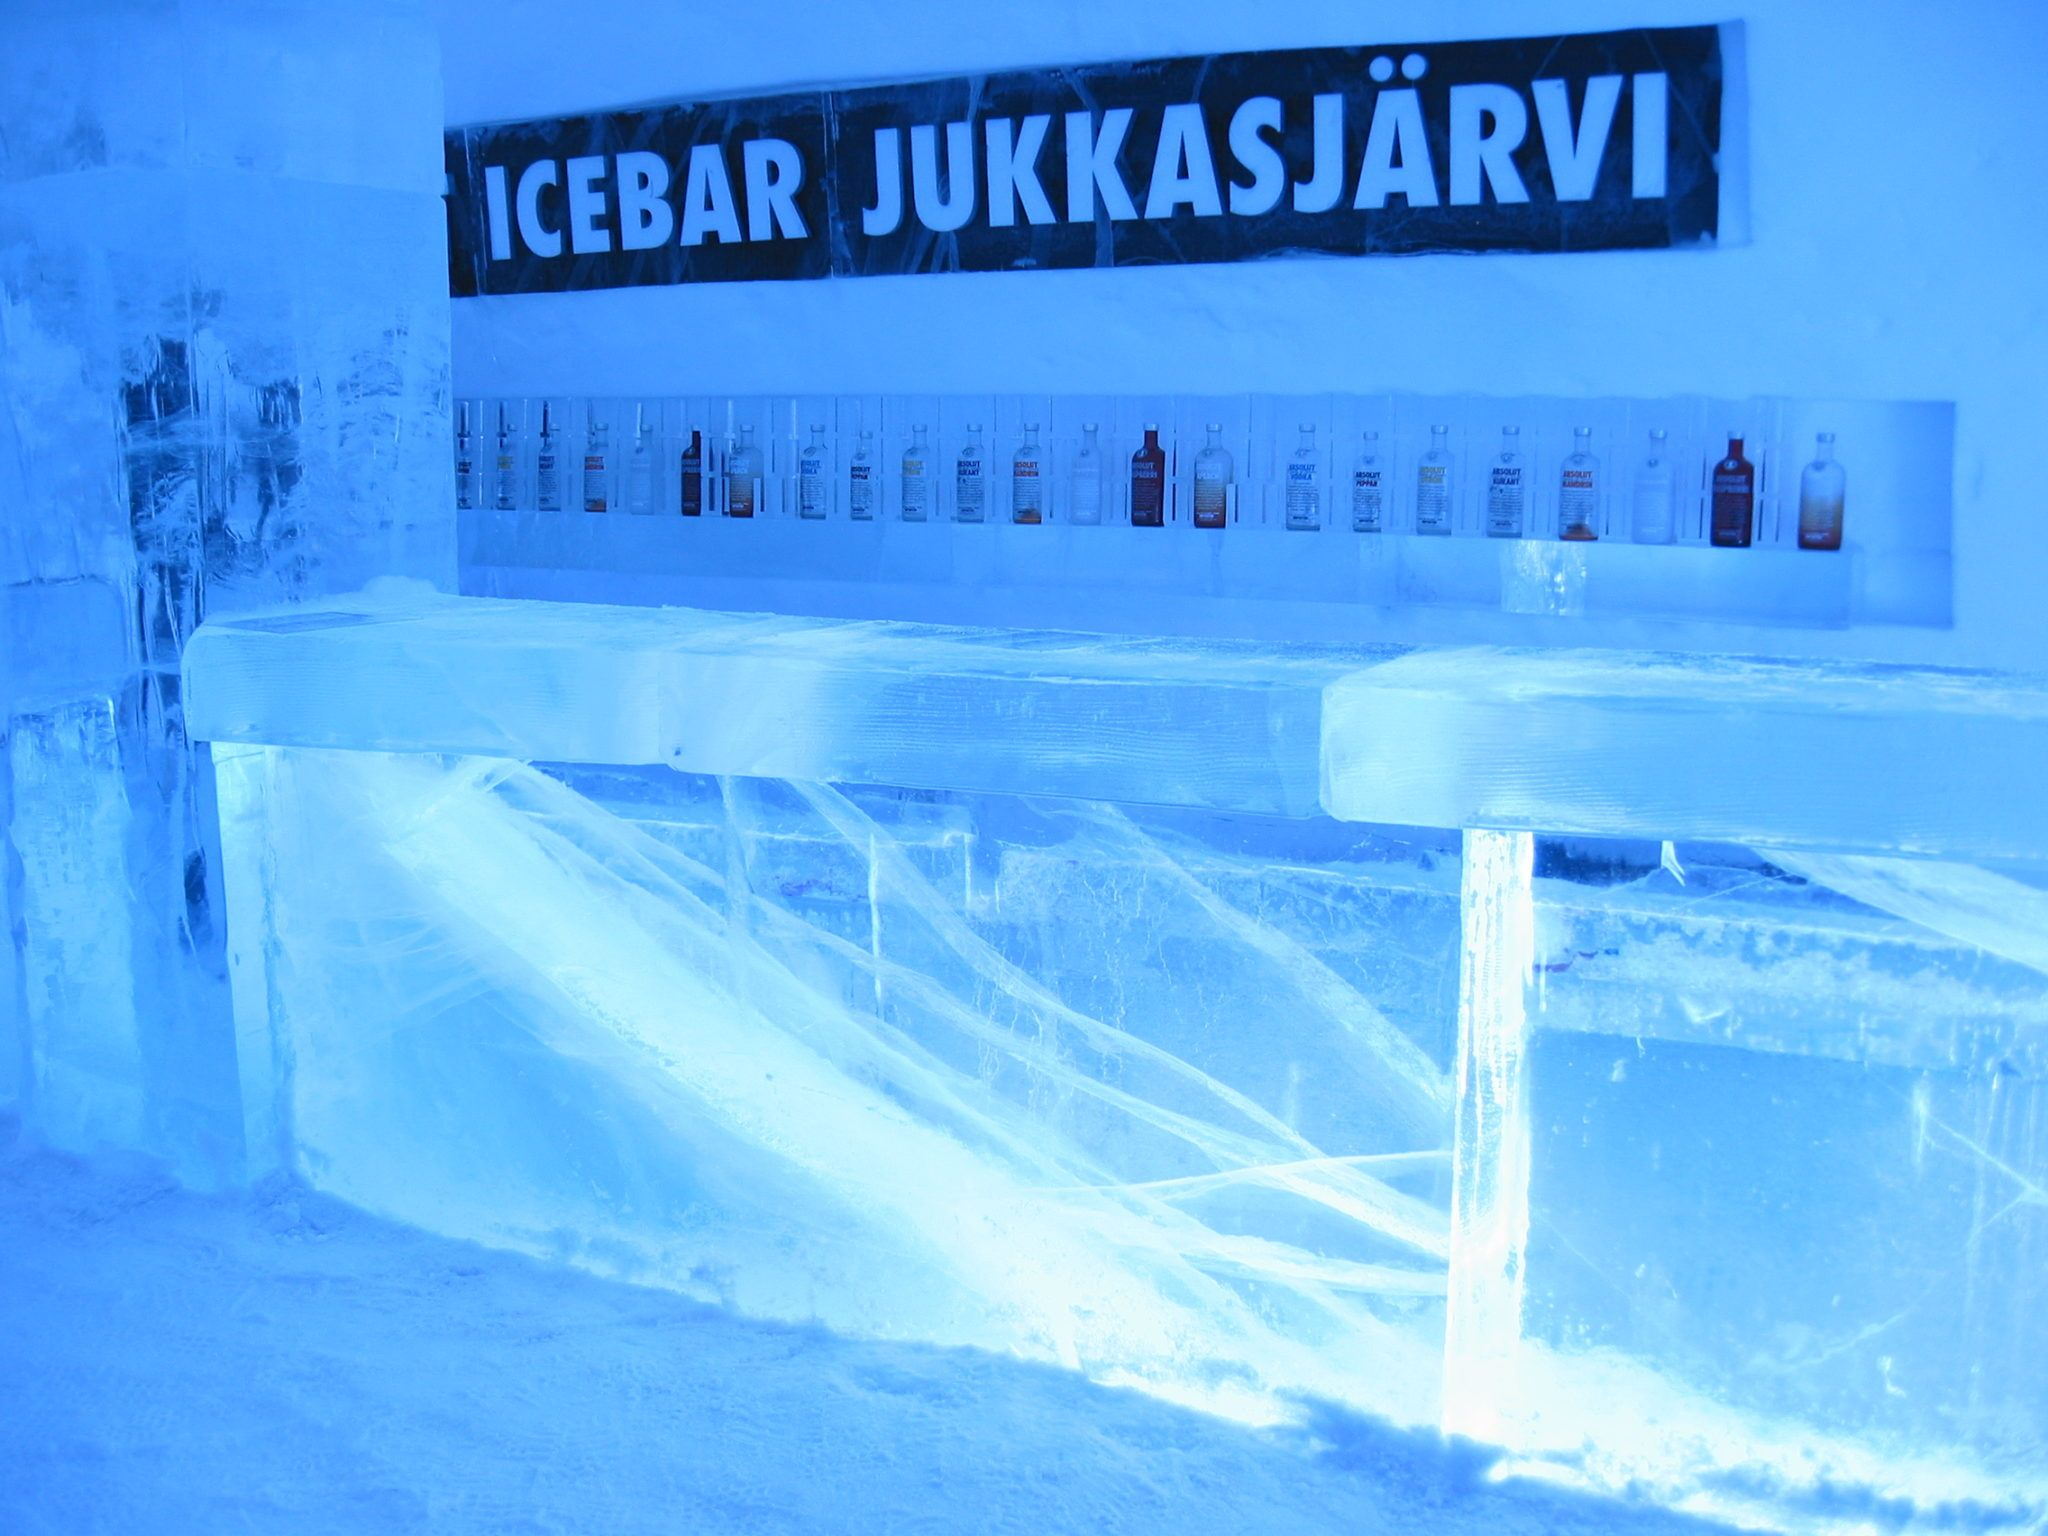 Icebar in Icehotel is a unique travel destination in Sweden.